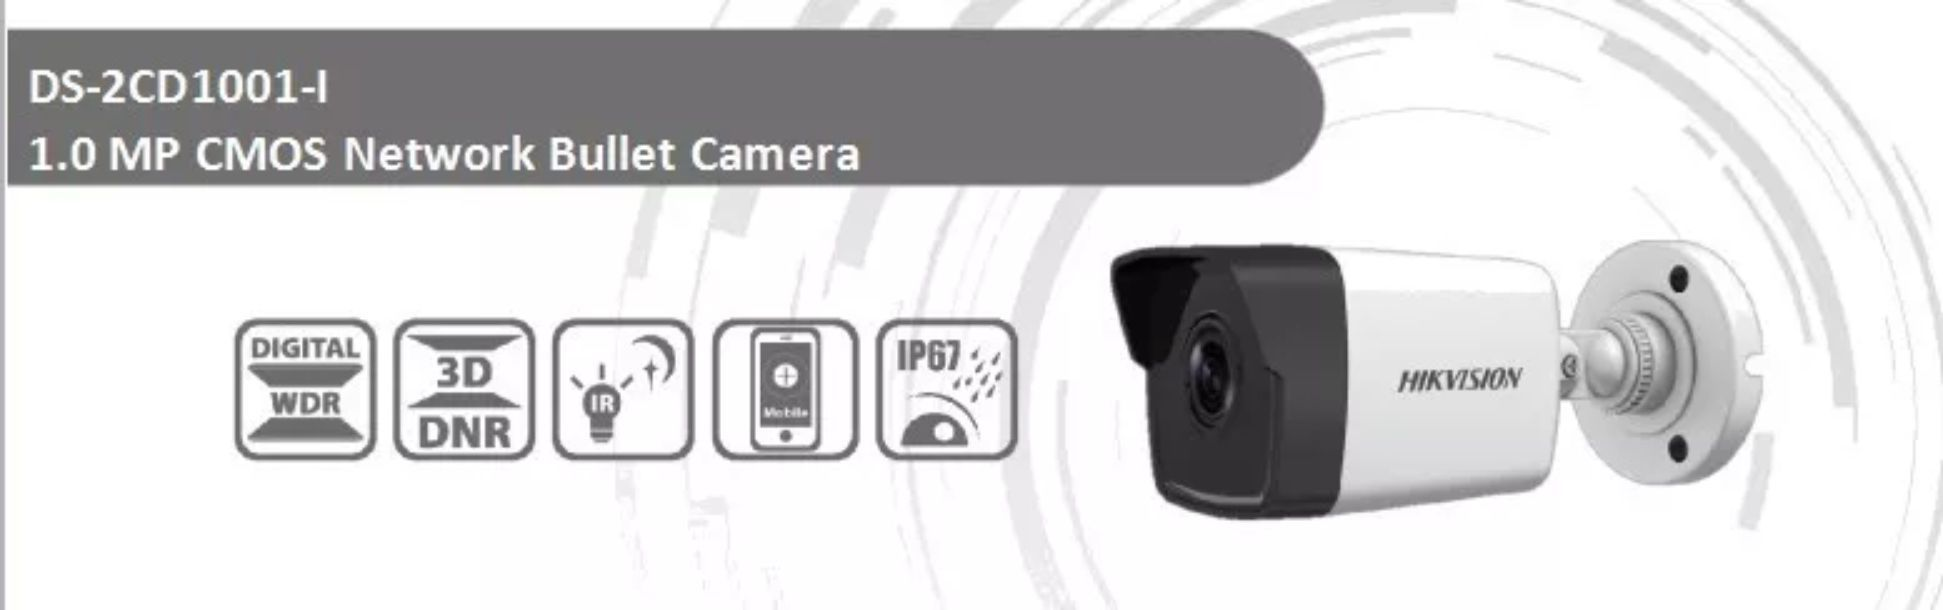 Câmera IP Bullet 1Mp 2.8mm DS-2CD1001-I Hikvision